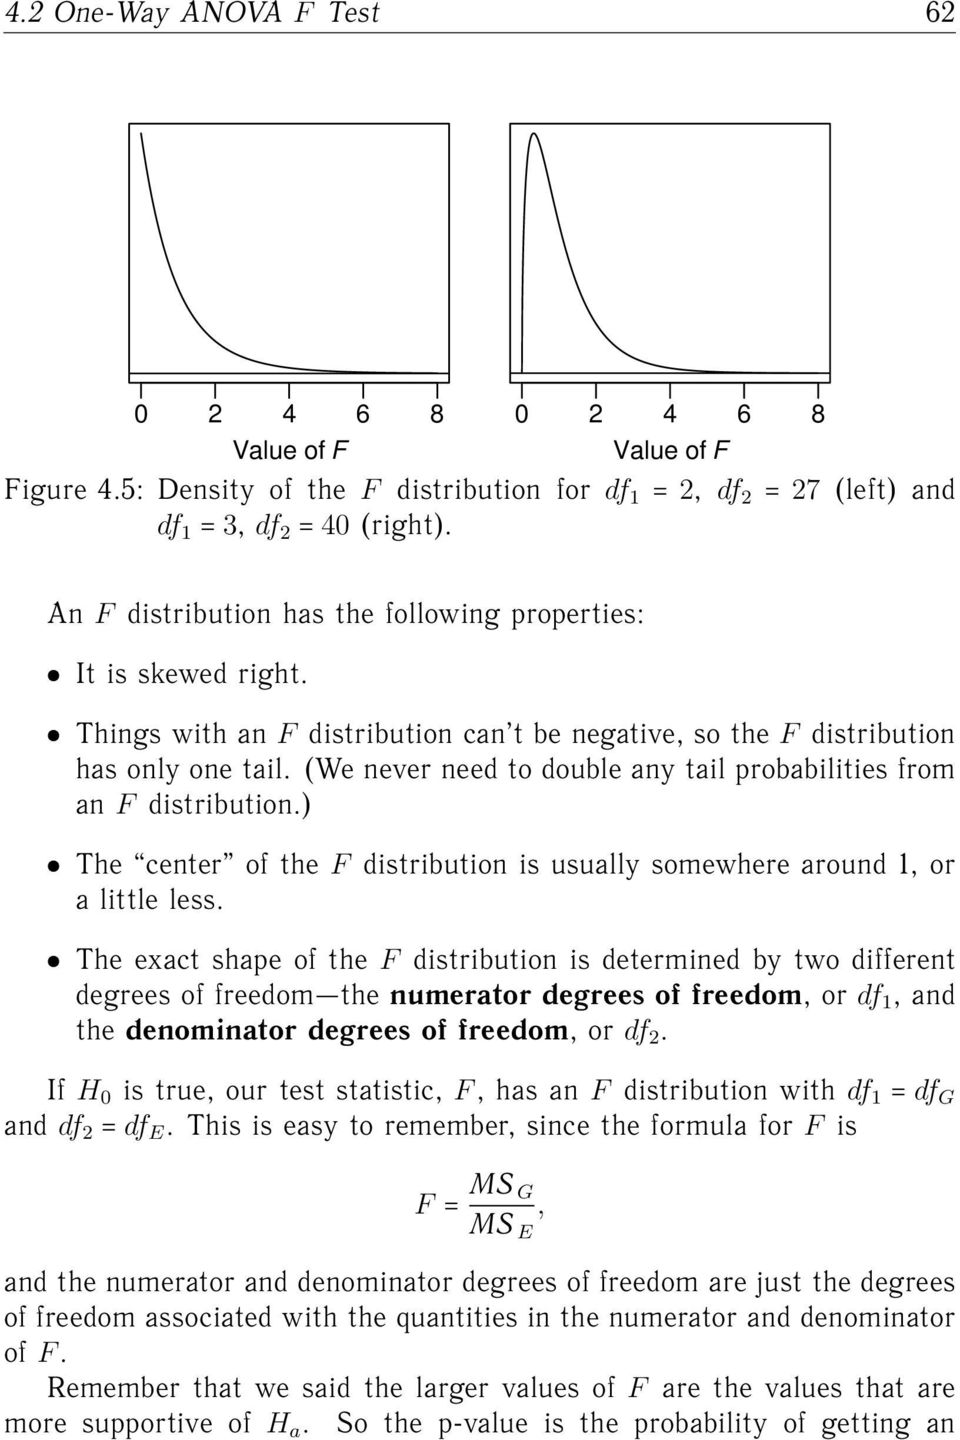 (We never need to double any tail probabilities from an F distribution.) ˆ The center of the F distribution is usually somewhere around 1, or a little less.